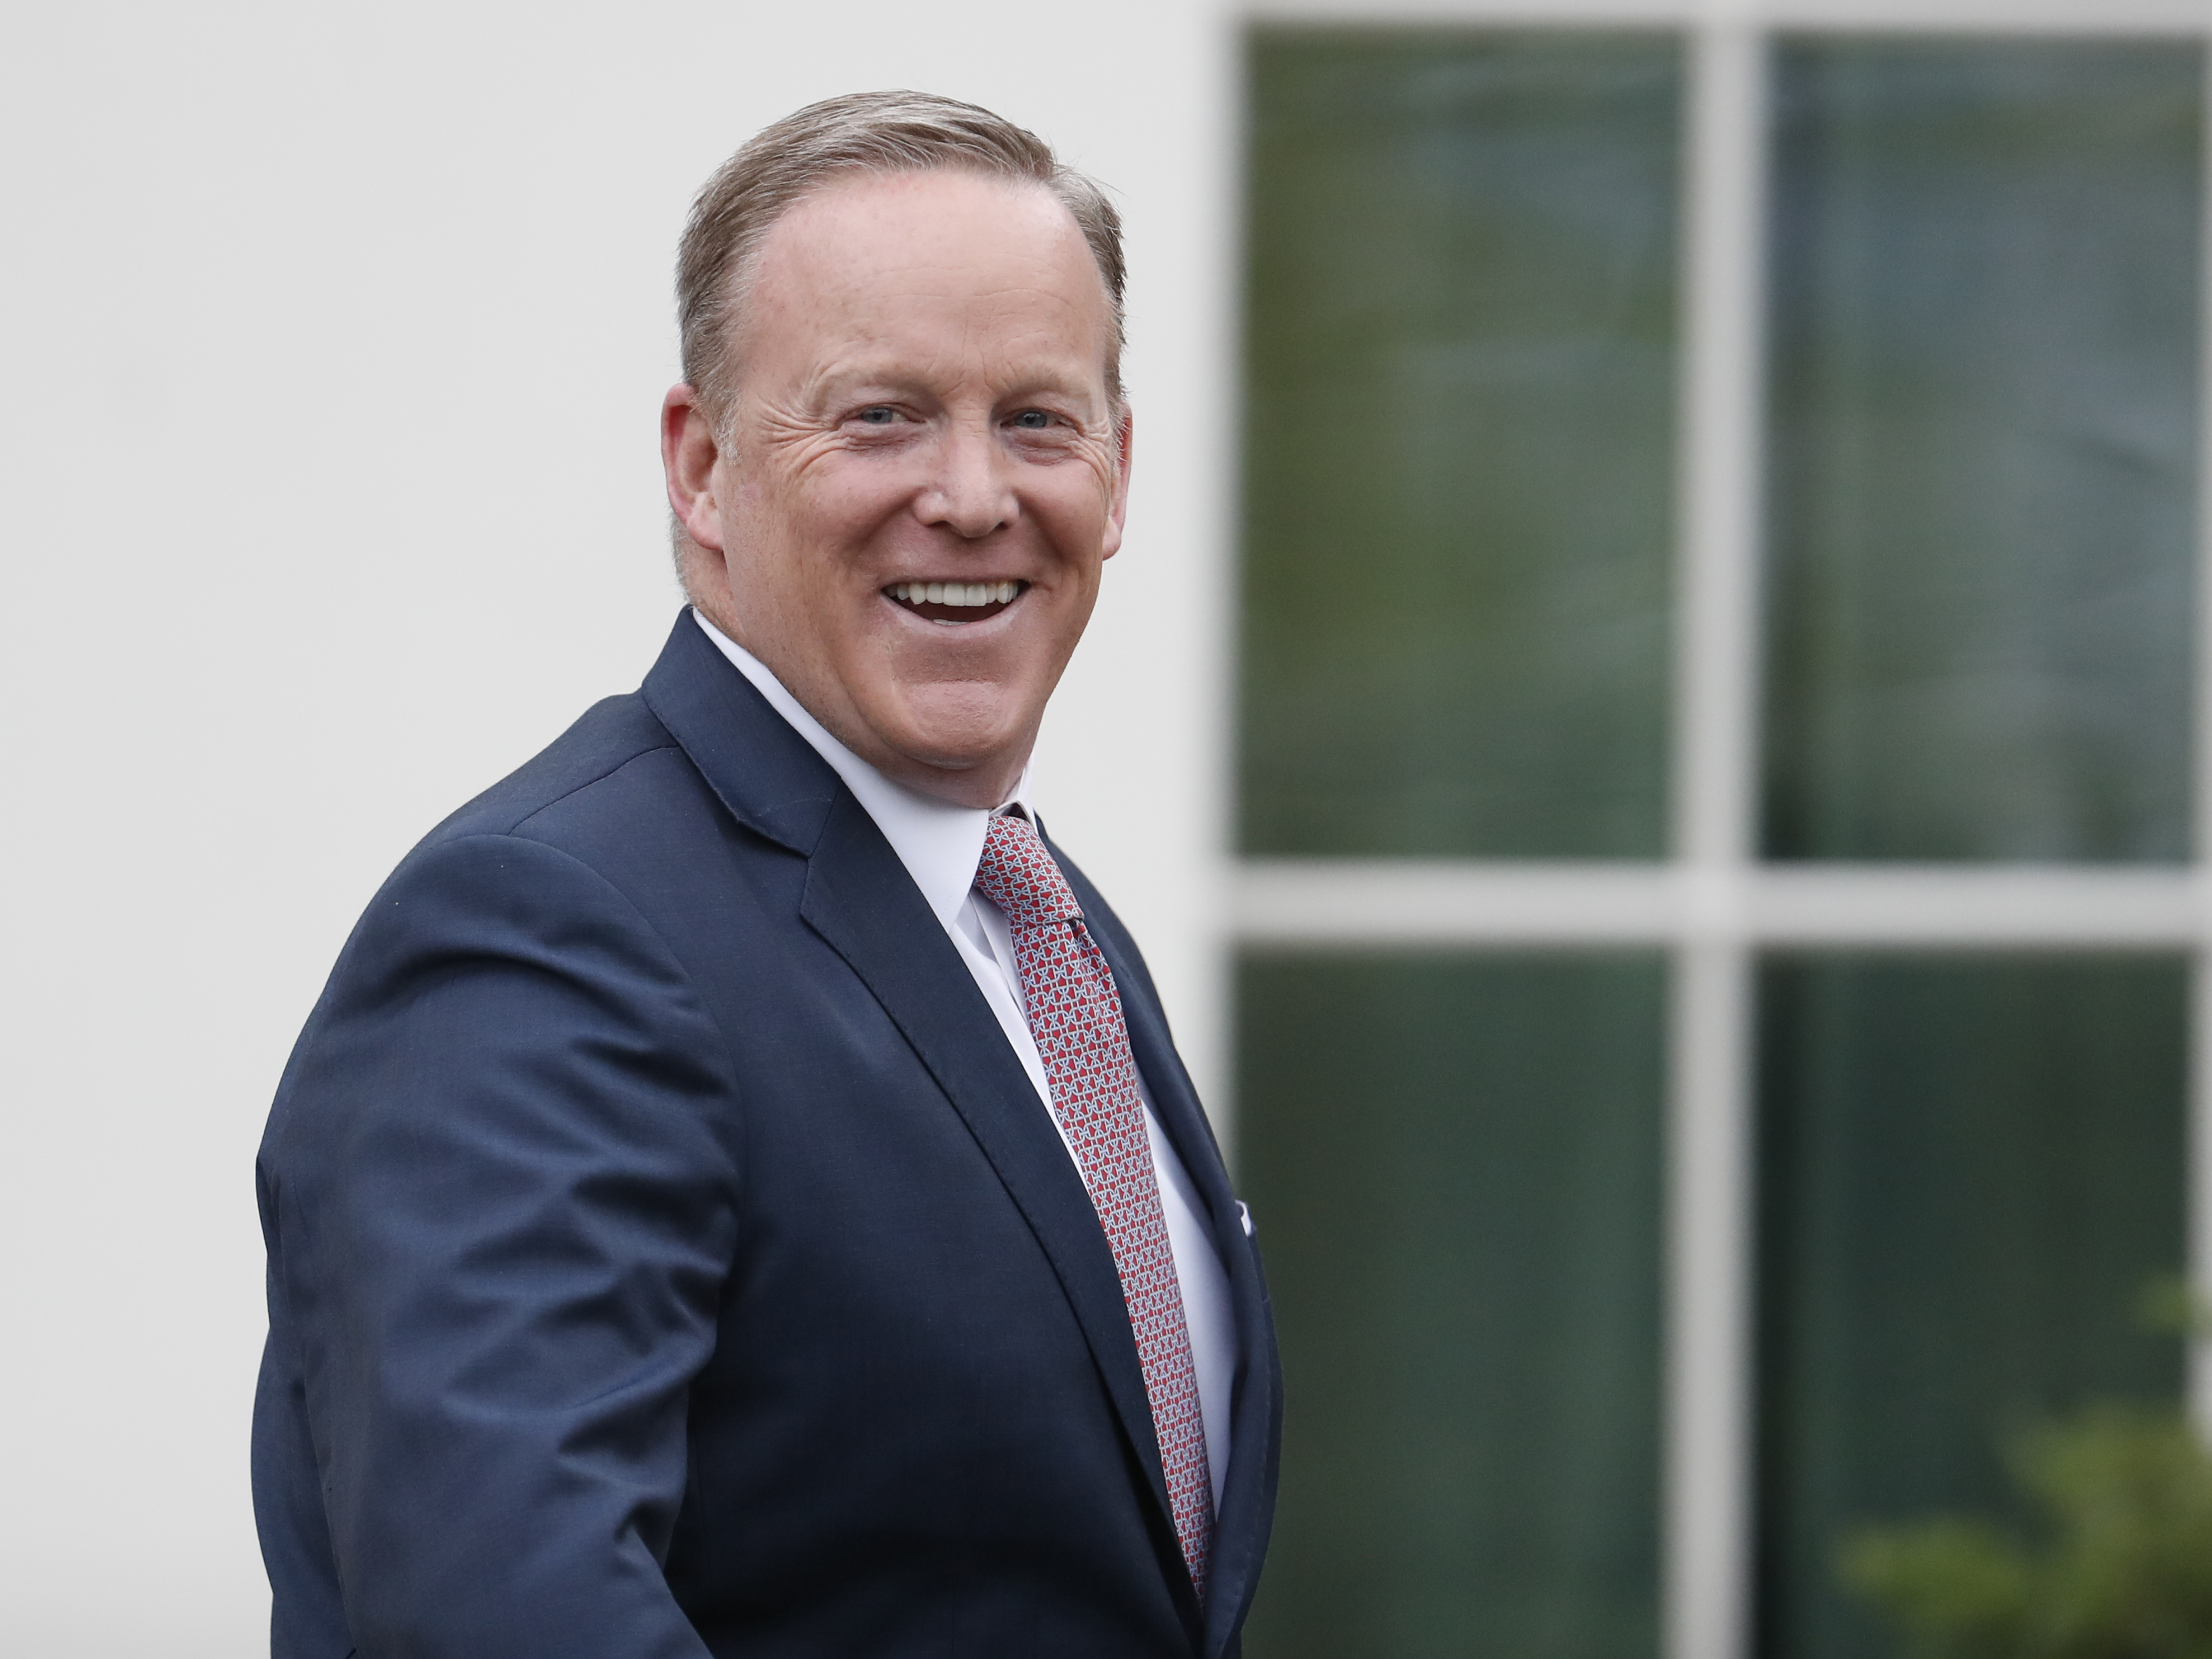 Sean Spicer meets Pope Francis at last